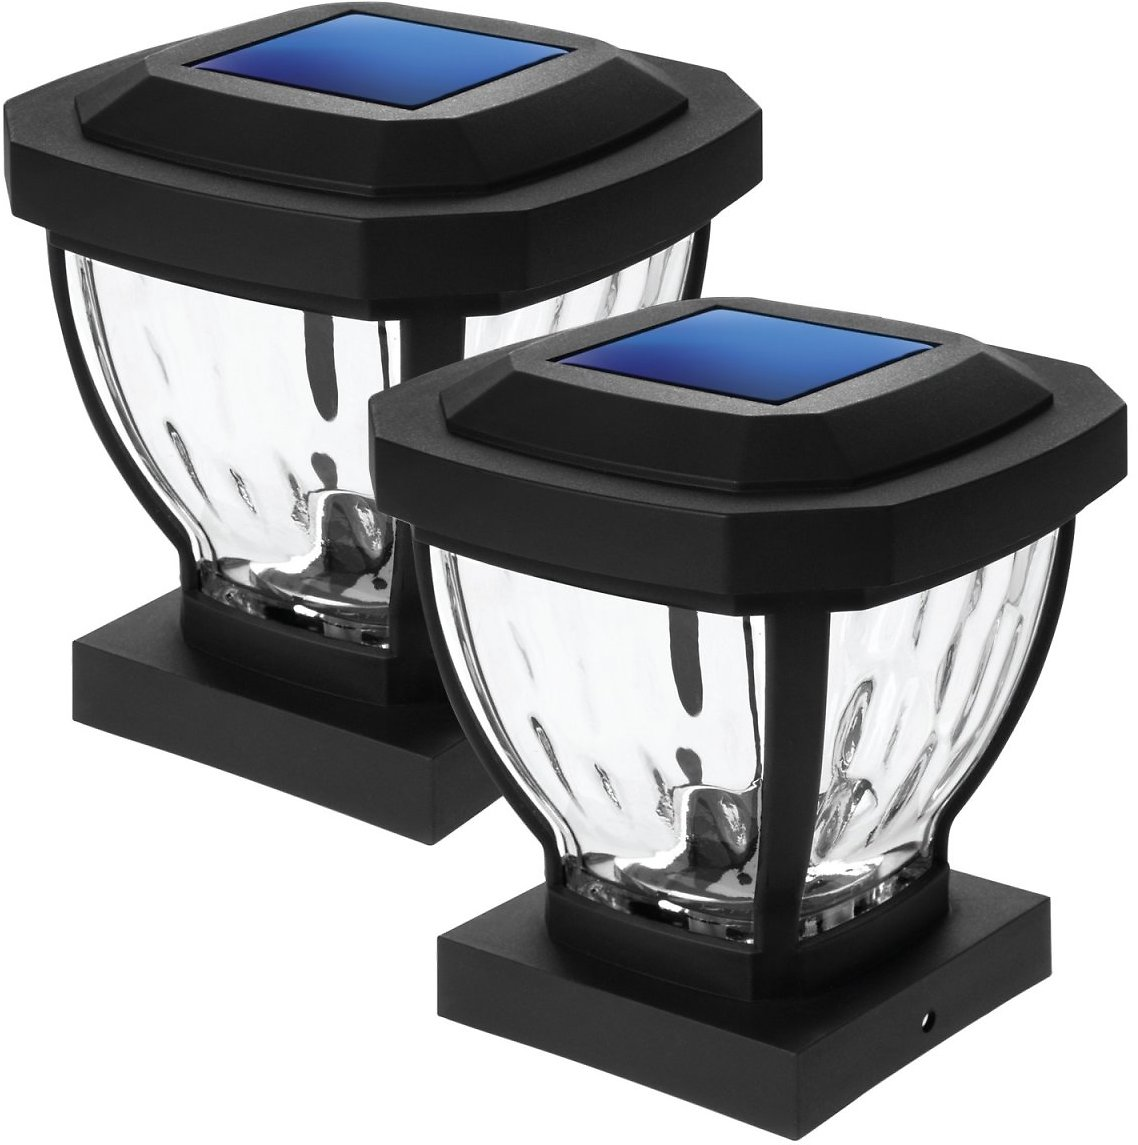 Home Zone Security Black Outdoor Solar Decorative Glass 4x4 Post Cap LED Light for Deck, Patio, Yard, Fence, & Walkway No Wiring